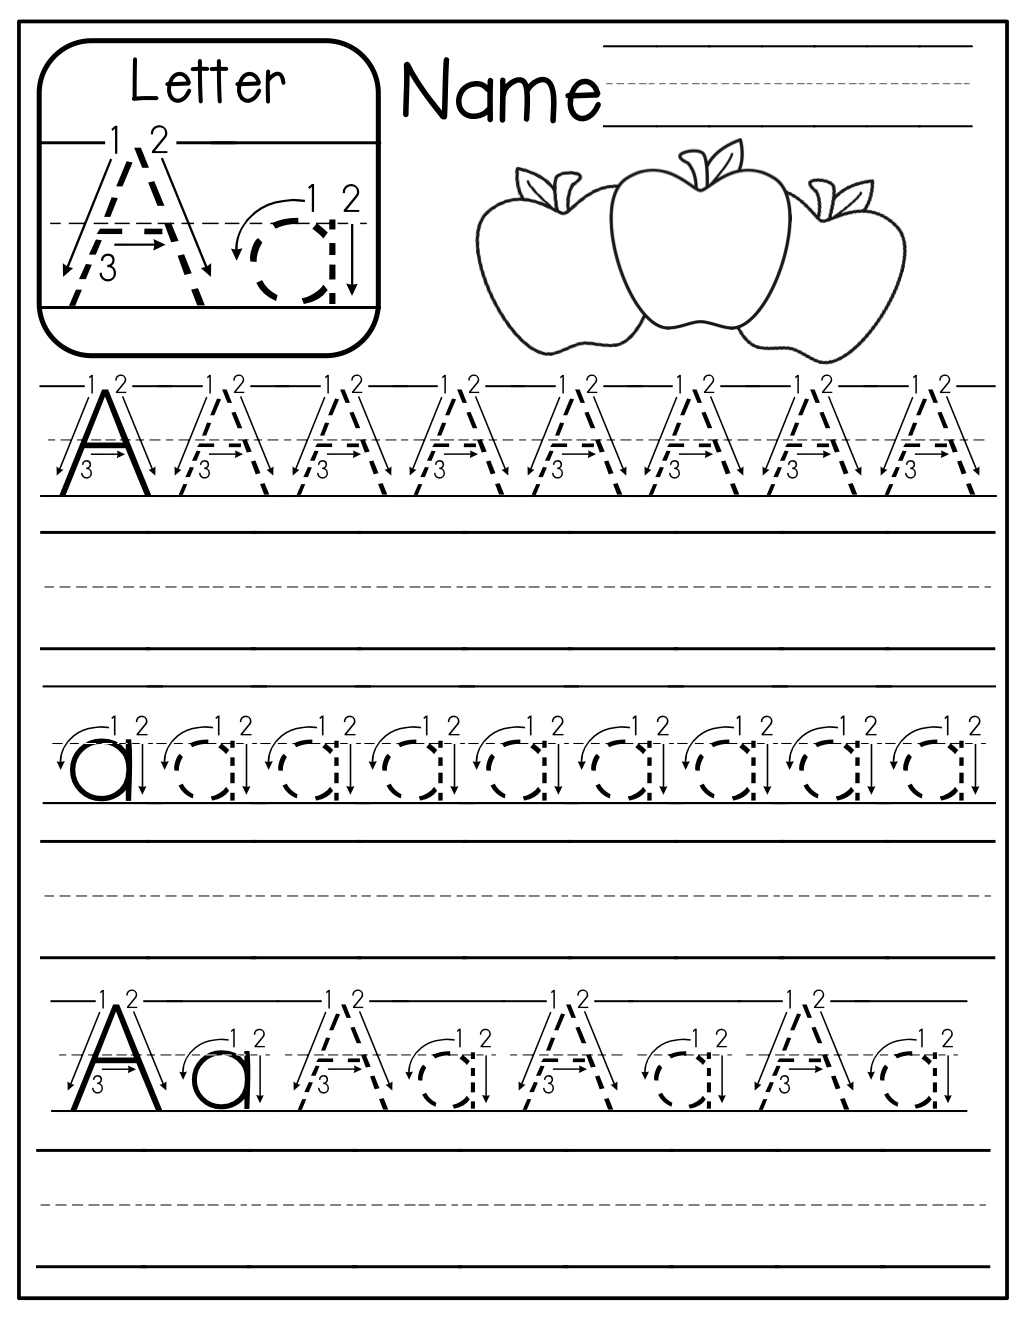 Freebie: A-Z Handwriting Practice Pages! | Kindergarten for Alphabet Handwriting Worksheets With Arrows